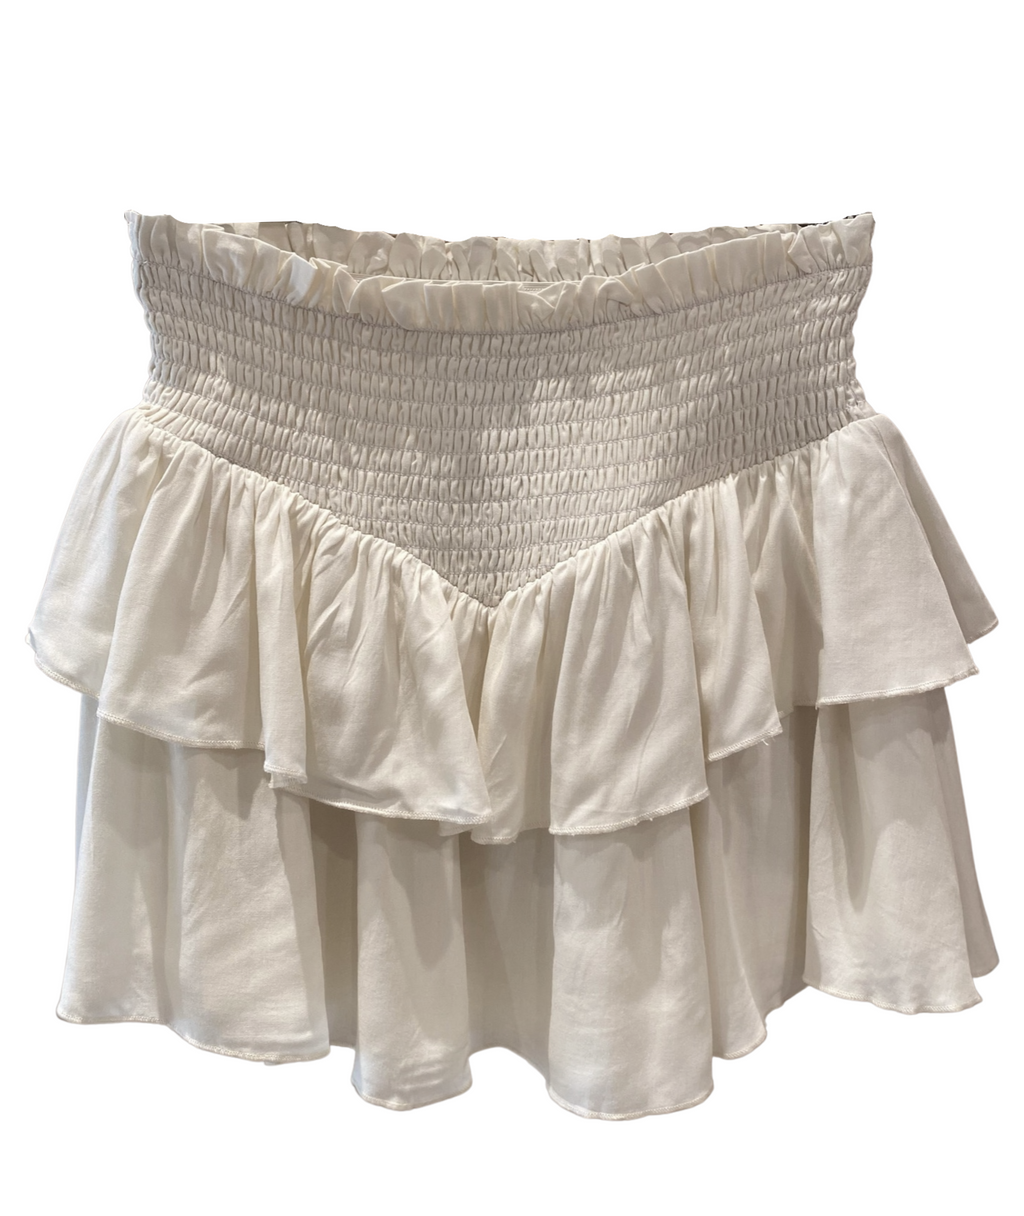 Katie J NYC Girls Brooke Natural Tiered Ruffle Skirt